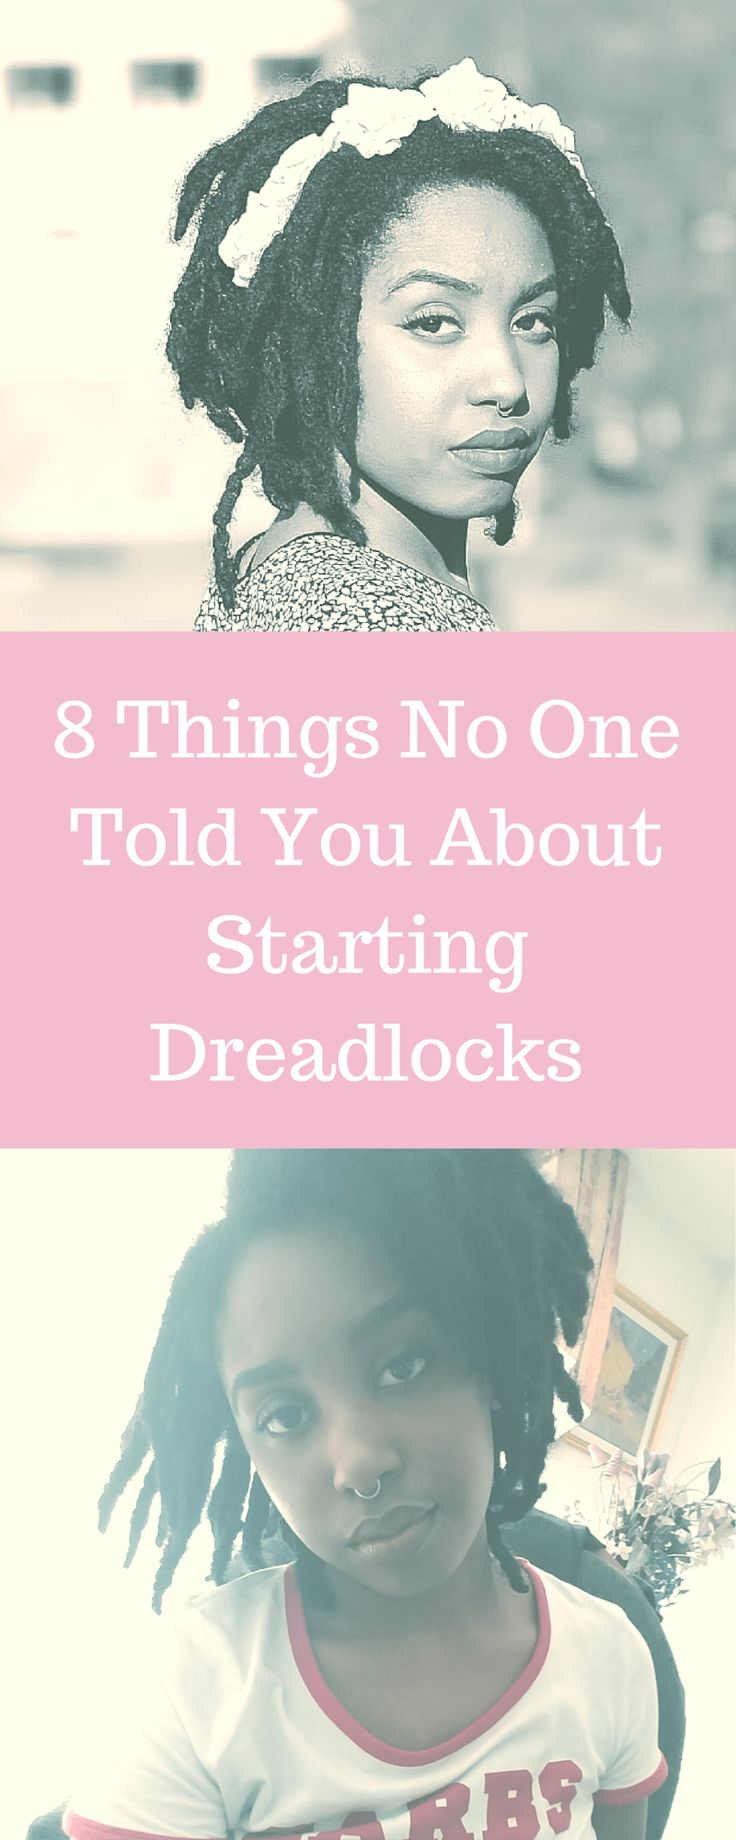 """Hey, are you thinking about starting your loc journey? Here are some things you probably didn't see on your Google search for """"starting locs."""" 